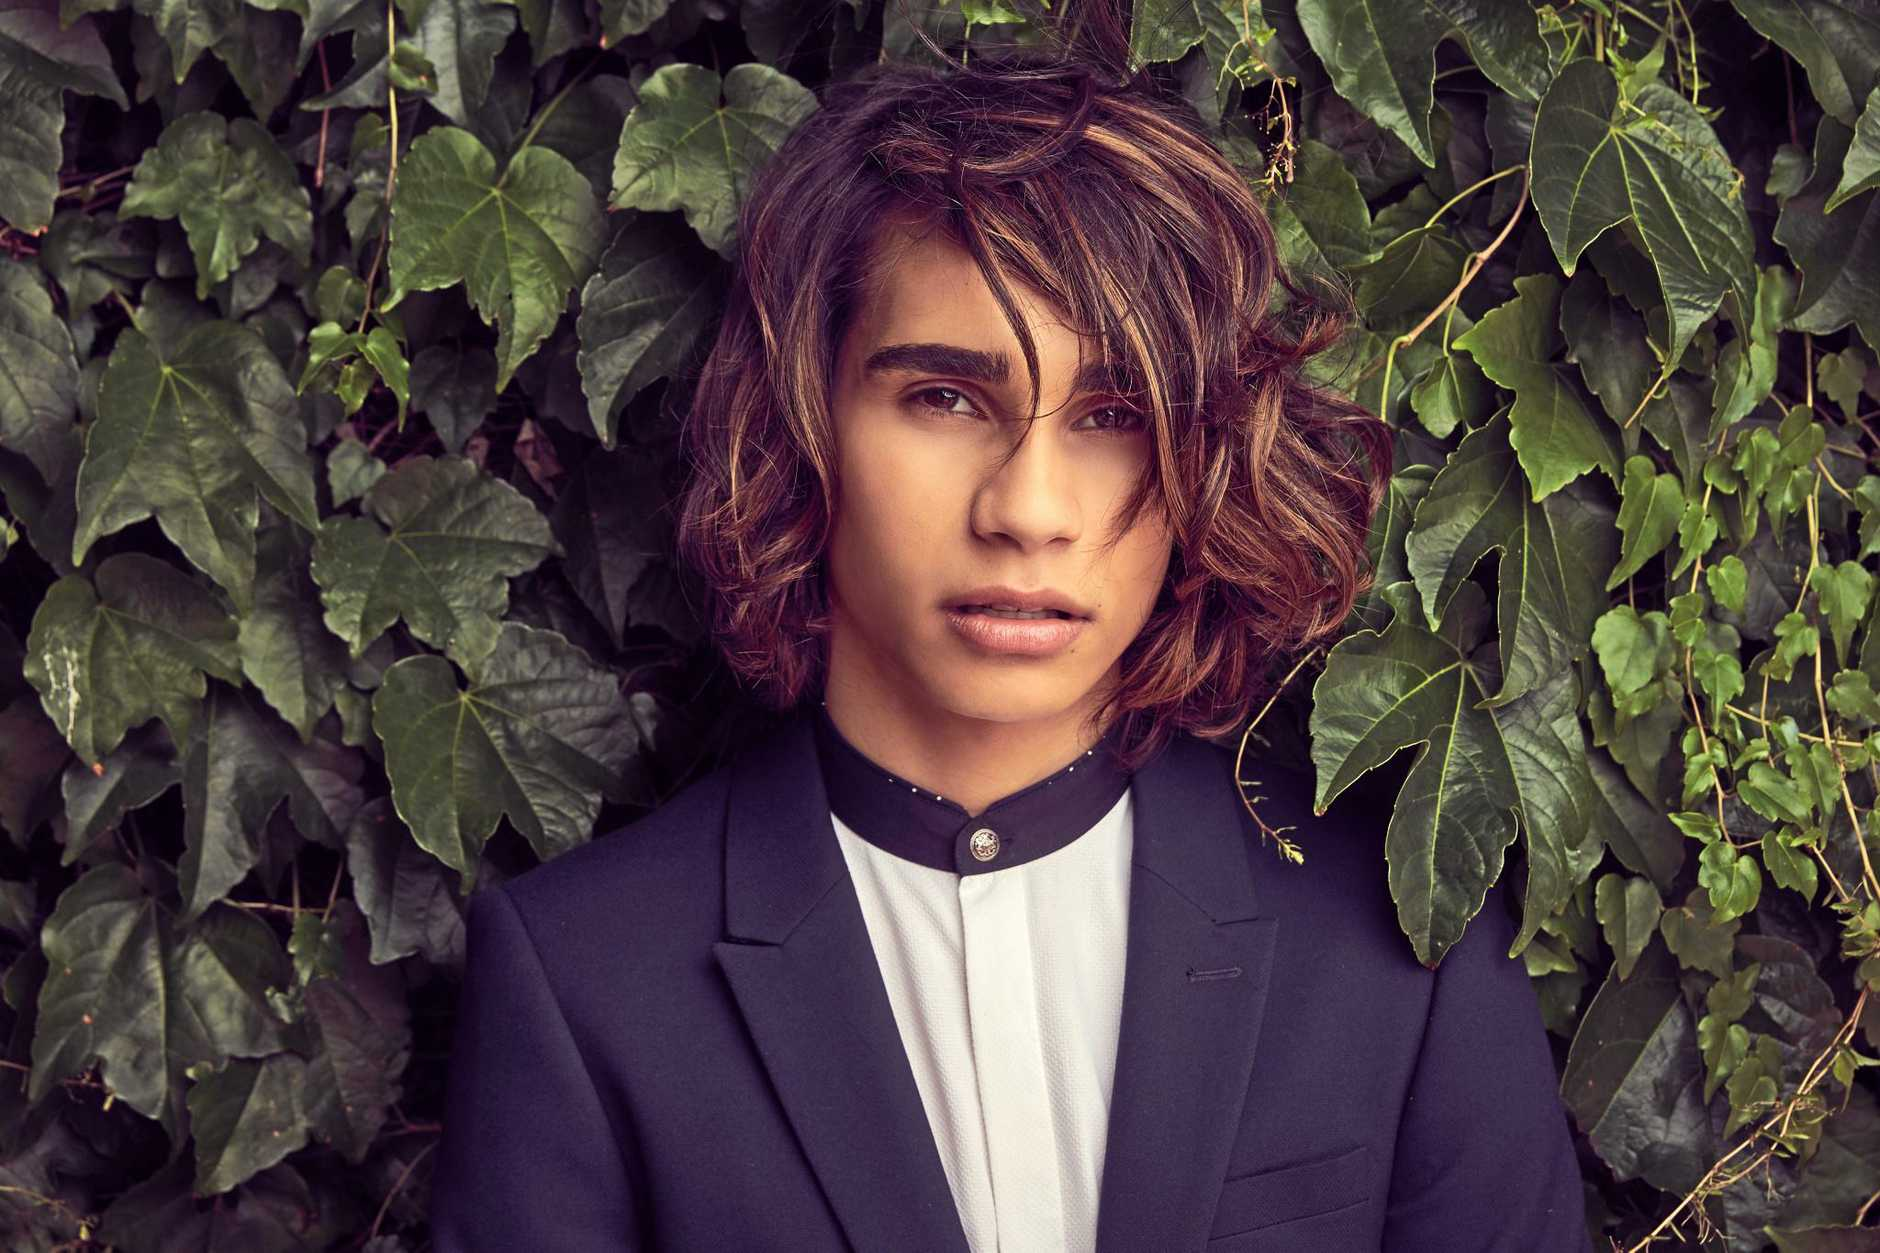 Isaiah Firebrace will be among the entertainers wowing Toowoomba crowds.